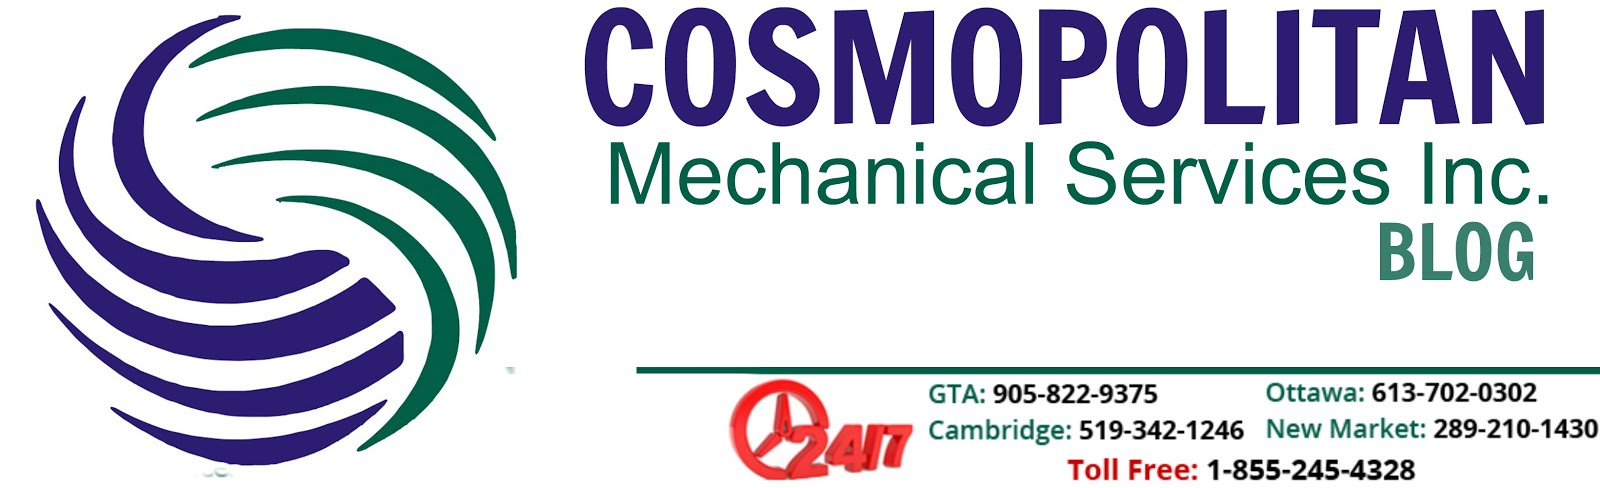 Cosmopolitan Mechanical Services Blog